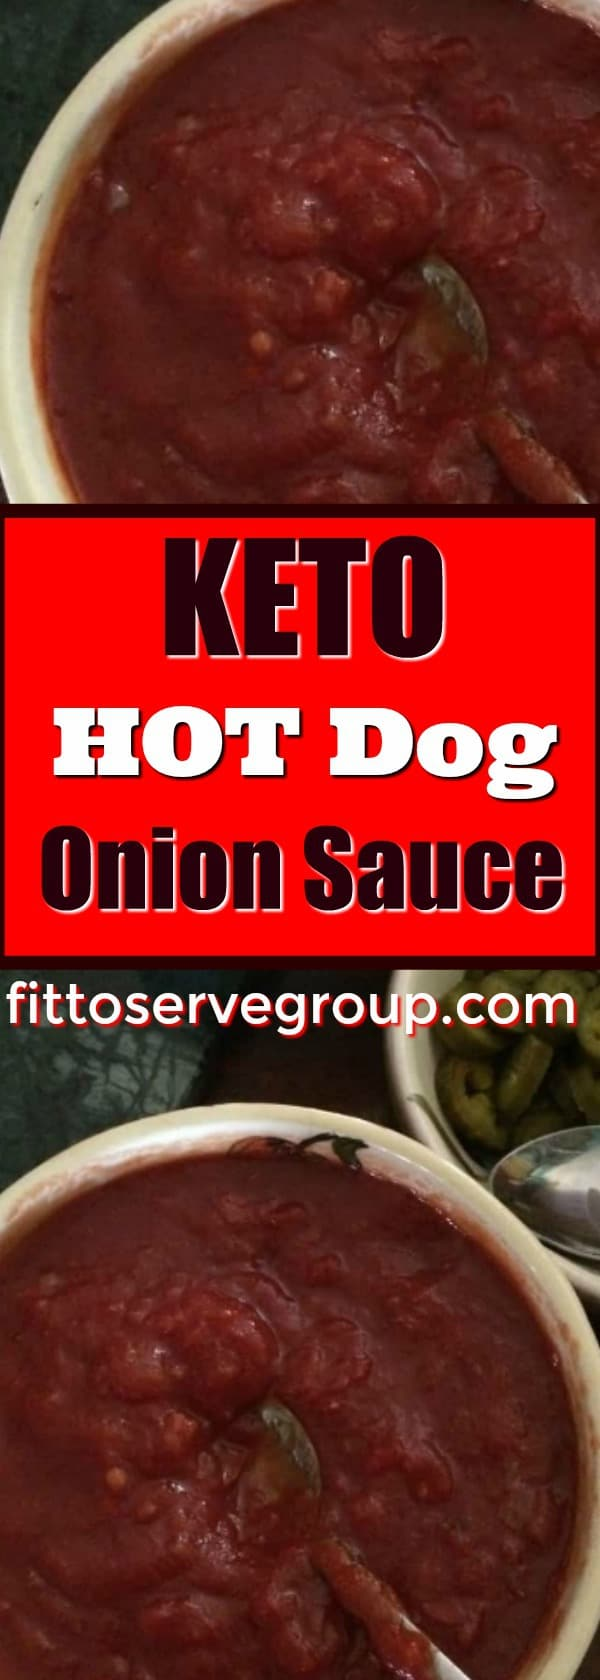 Keto hot dog onion sauce